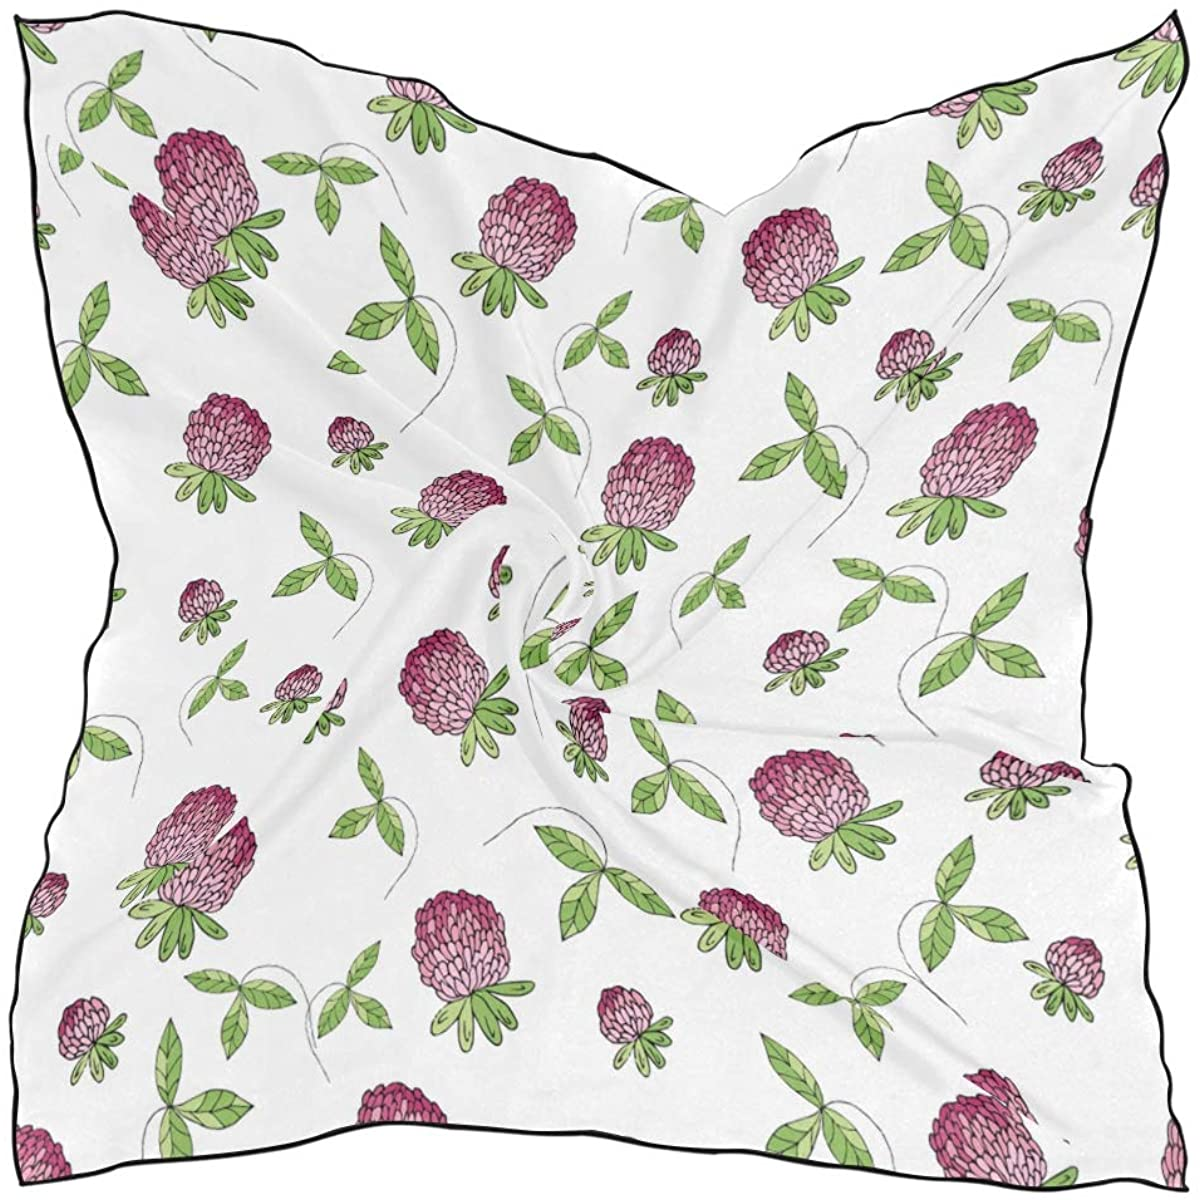 Women's Soft Polyester Silk Square Scarf Spring Garden Wildflowers And Clover Modern Floral Themed Graphics Retro Fashion Print Head & Hair Scarf Neckerchief Accessory-23.6x23.6 Inch